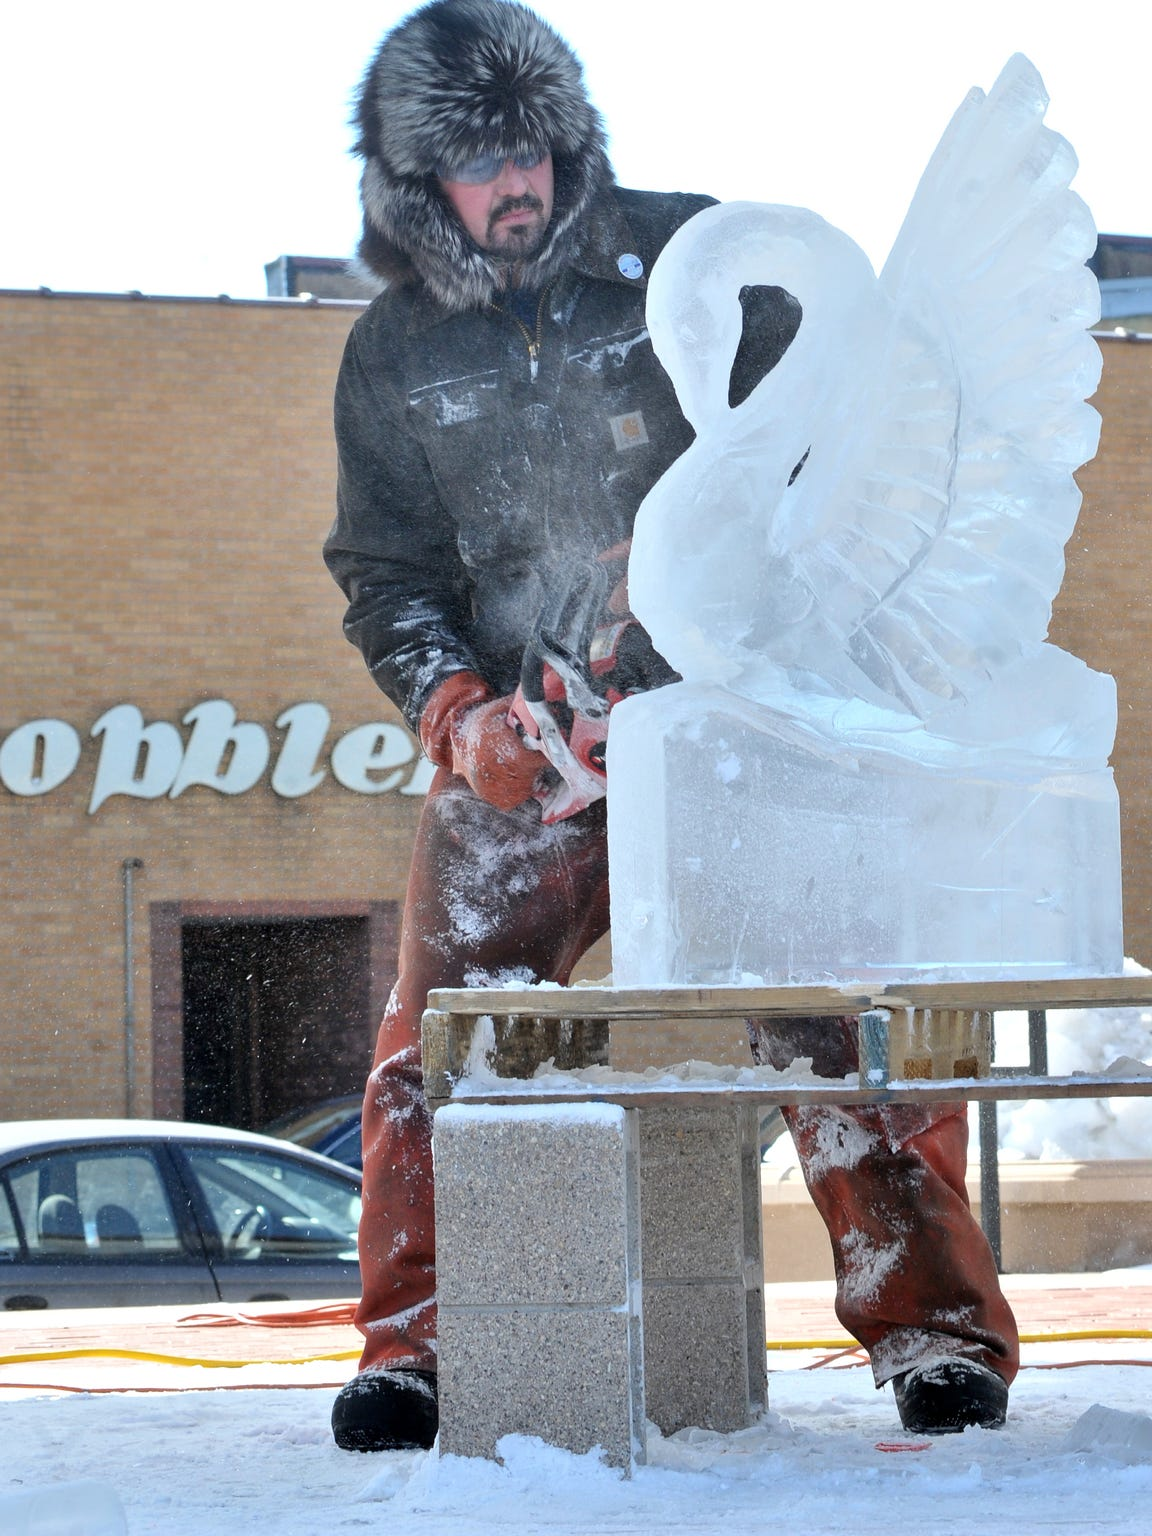 In this 2012 file photo, Steve Brandt of Cedarburg carves a swan sculpture out of a ice block during Winter Fest 2012 at The 400 Block in downtown Wausau.